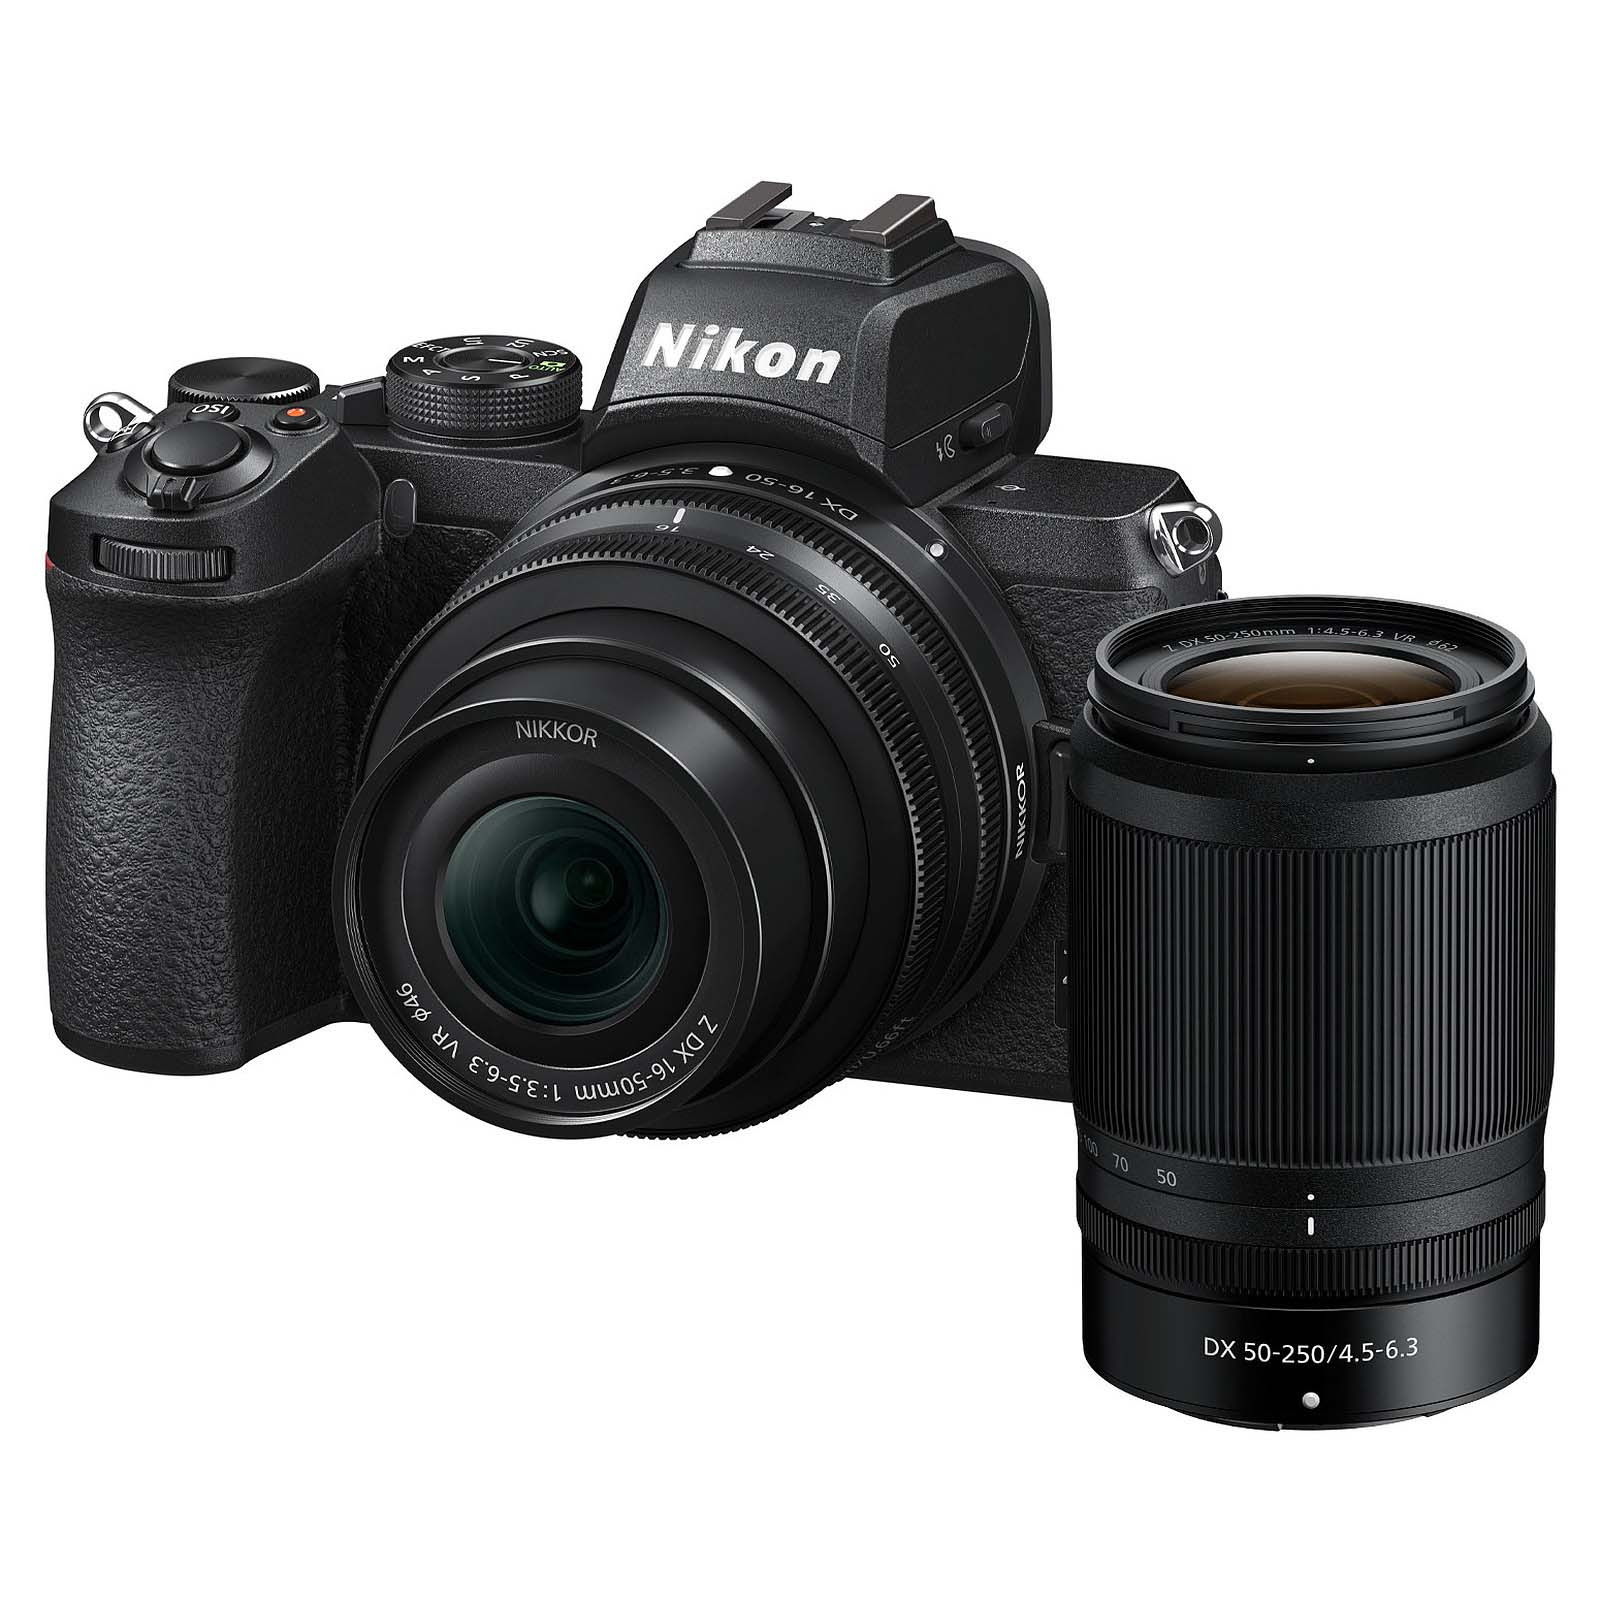 KIT NIKON Z50 + 16-50VR + 50-250VR + TRIPODE + SD 64GB 1000X